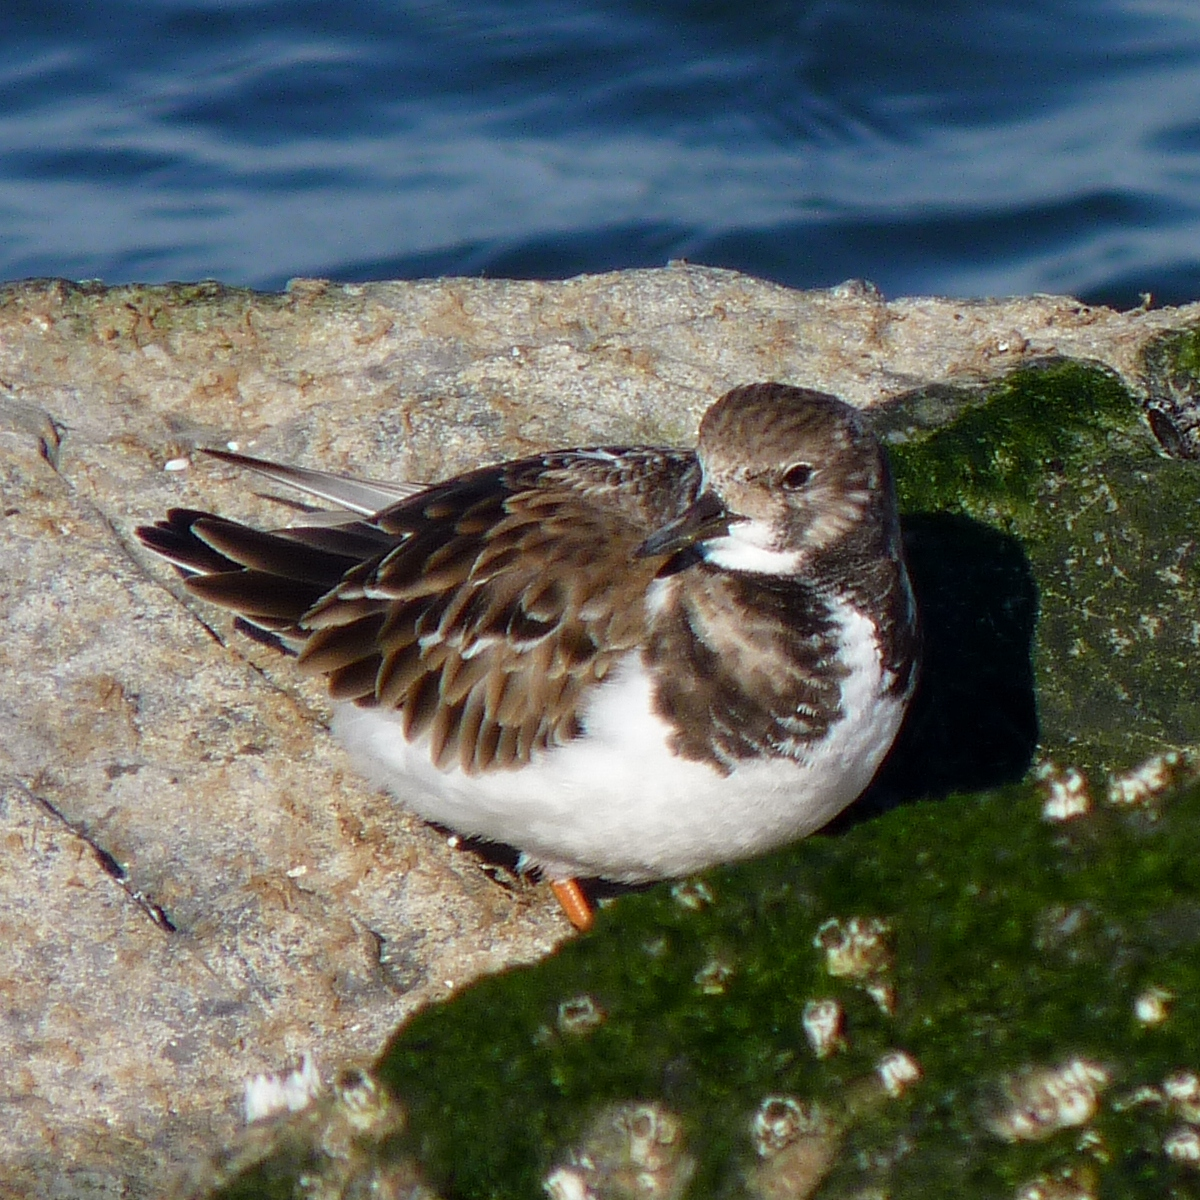 Photo of a ruddy turnstone. Image credit: flickr.com user Dendroica cerulea